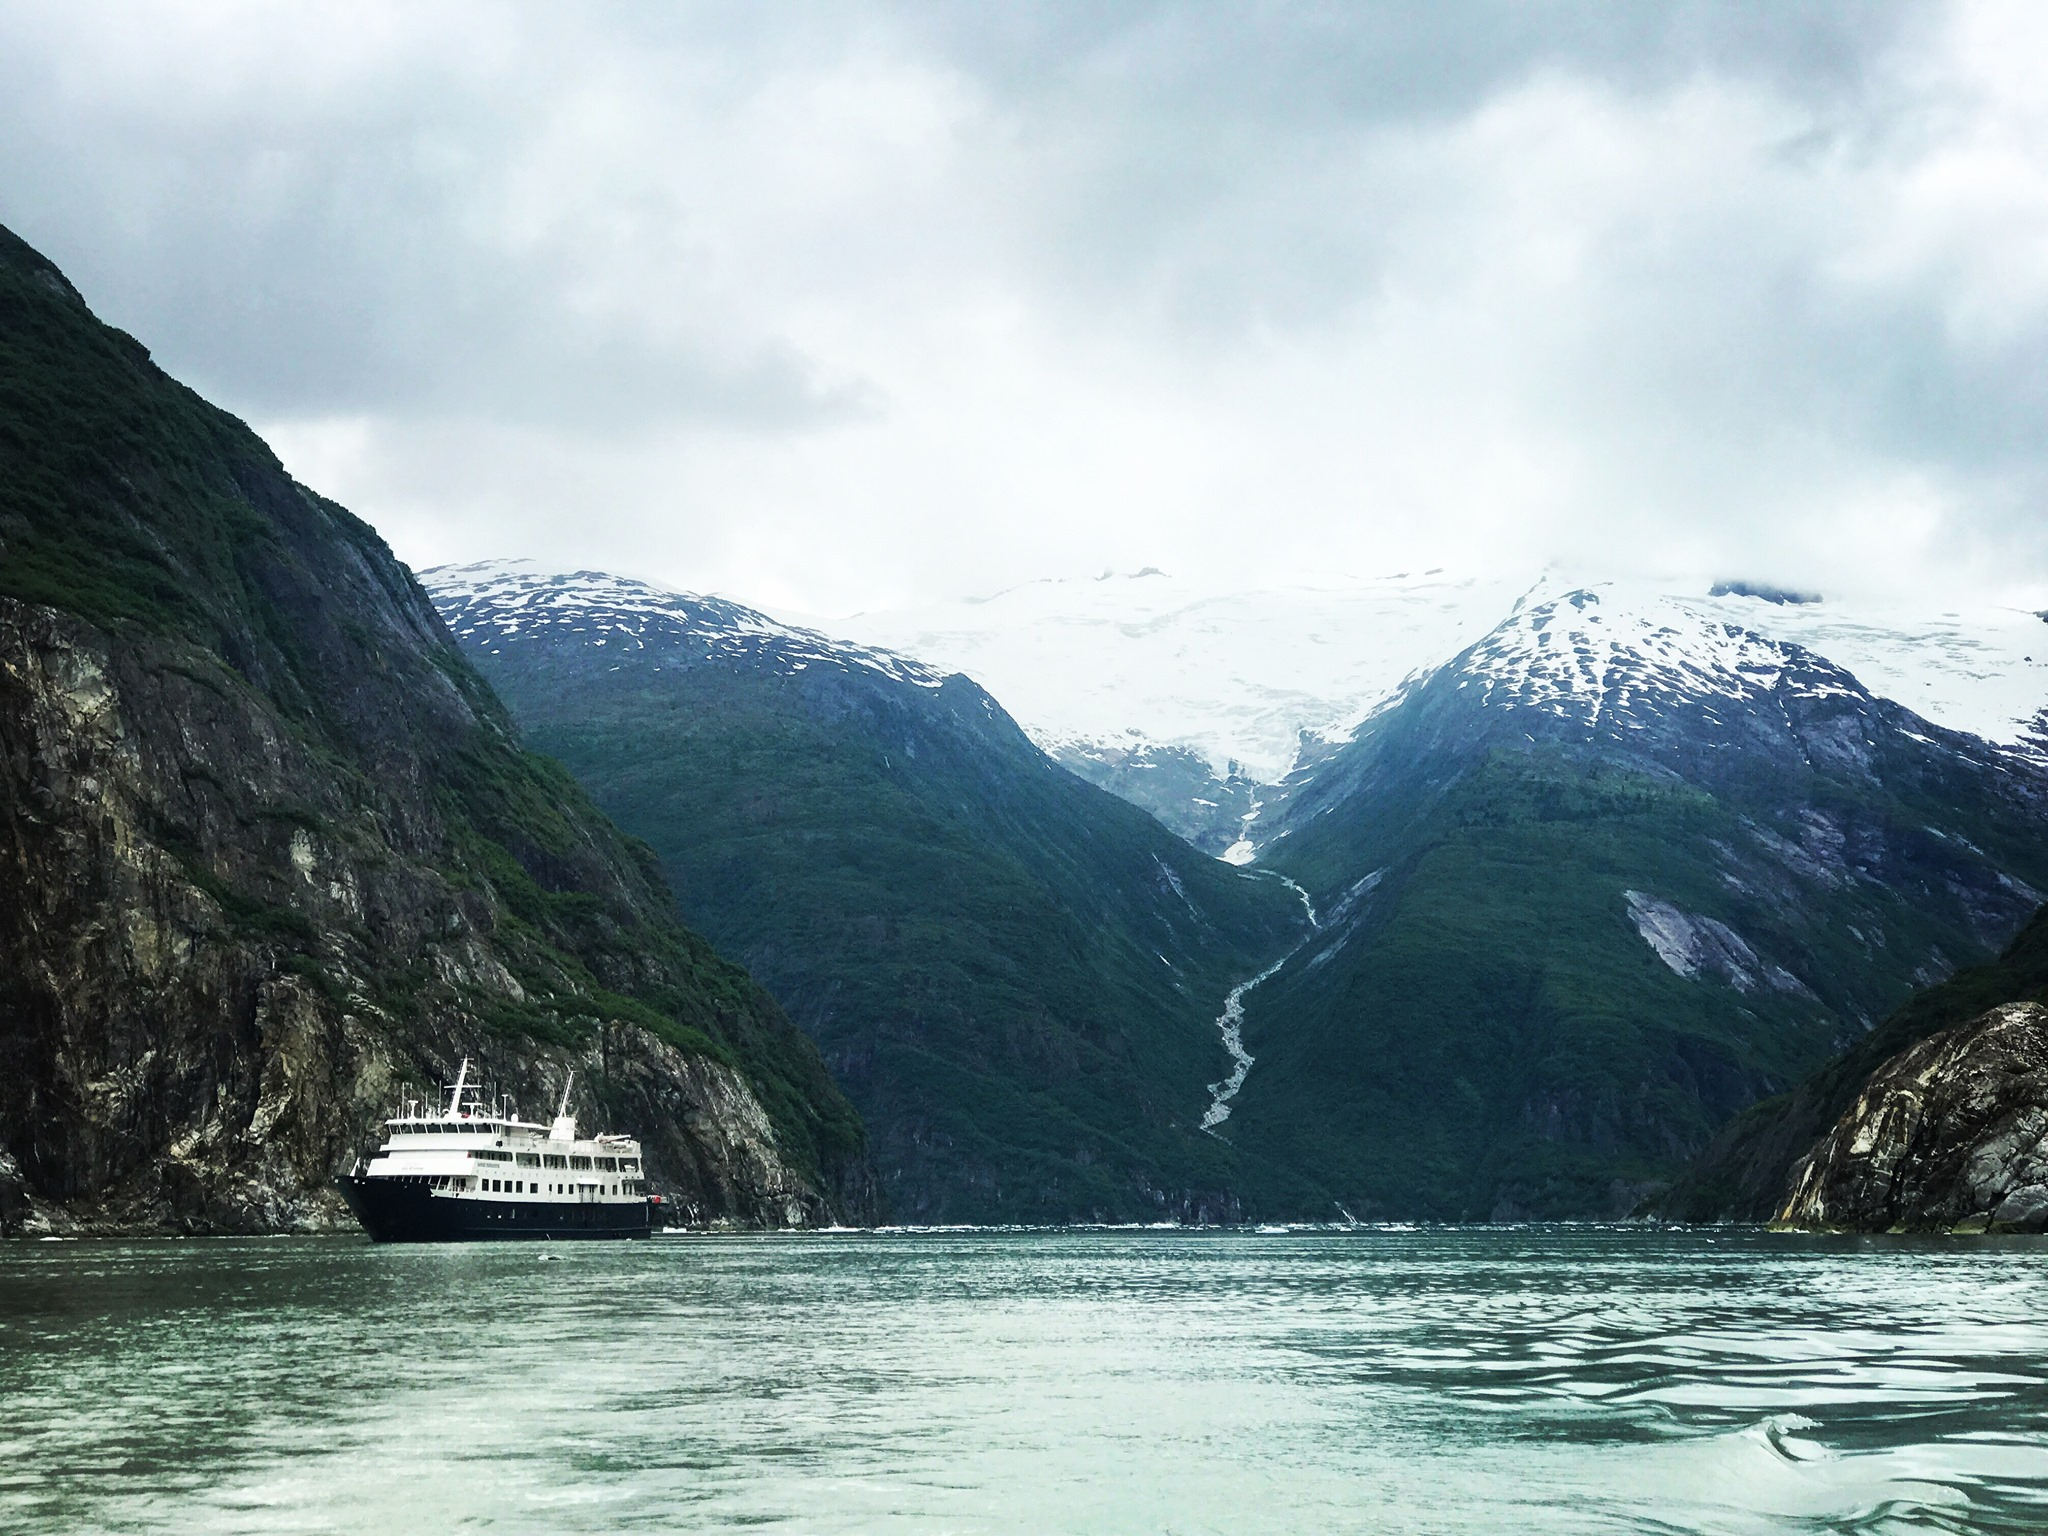 Small ship cruise line UnCruise Adventures will recommence its Alaska cruises earlier than expected after moving departures from Washington State to Juneau.